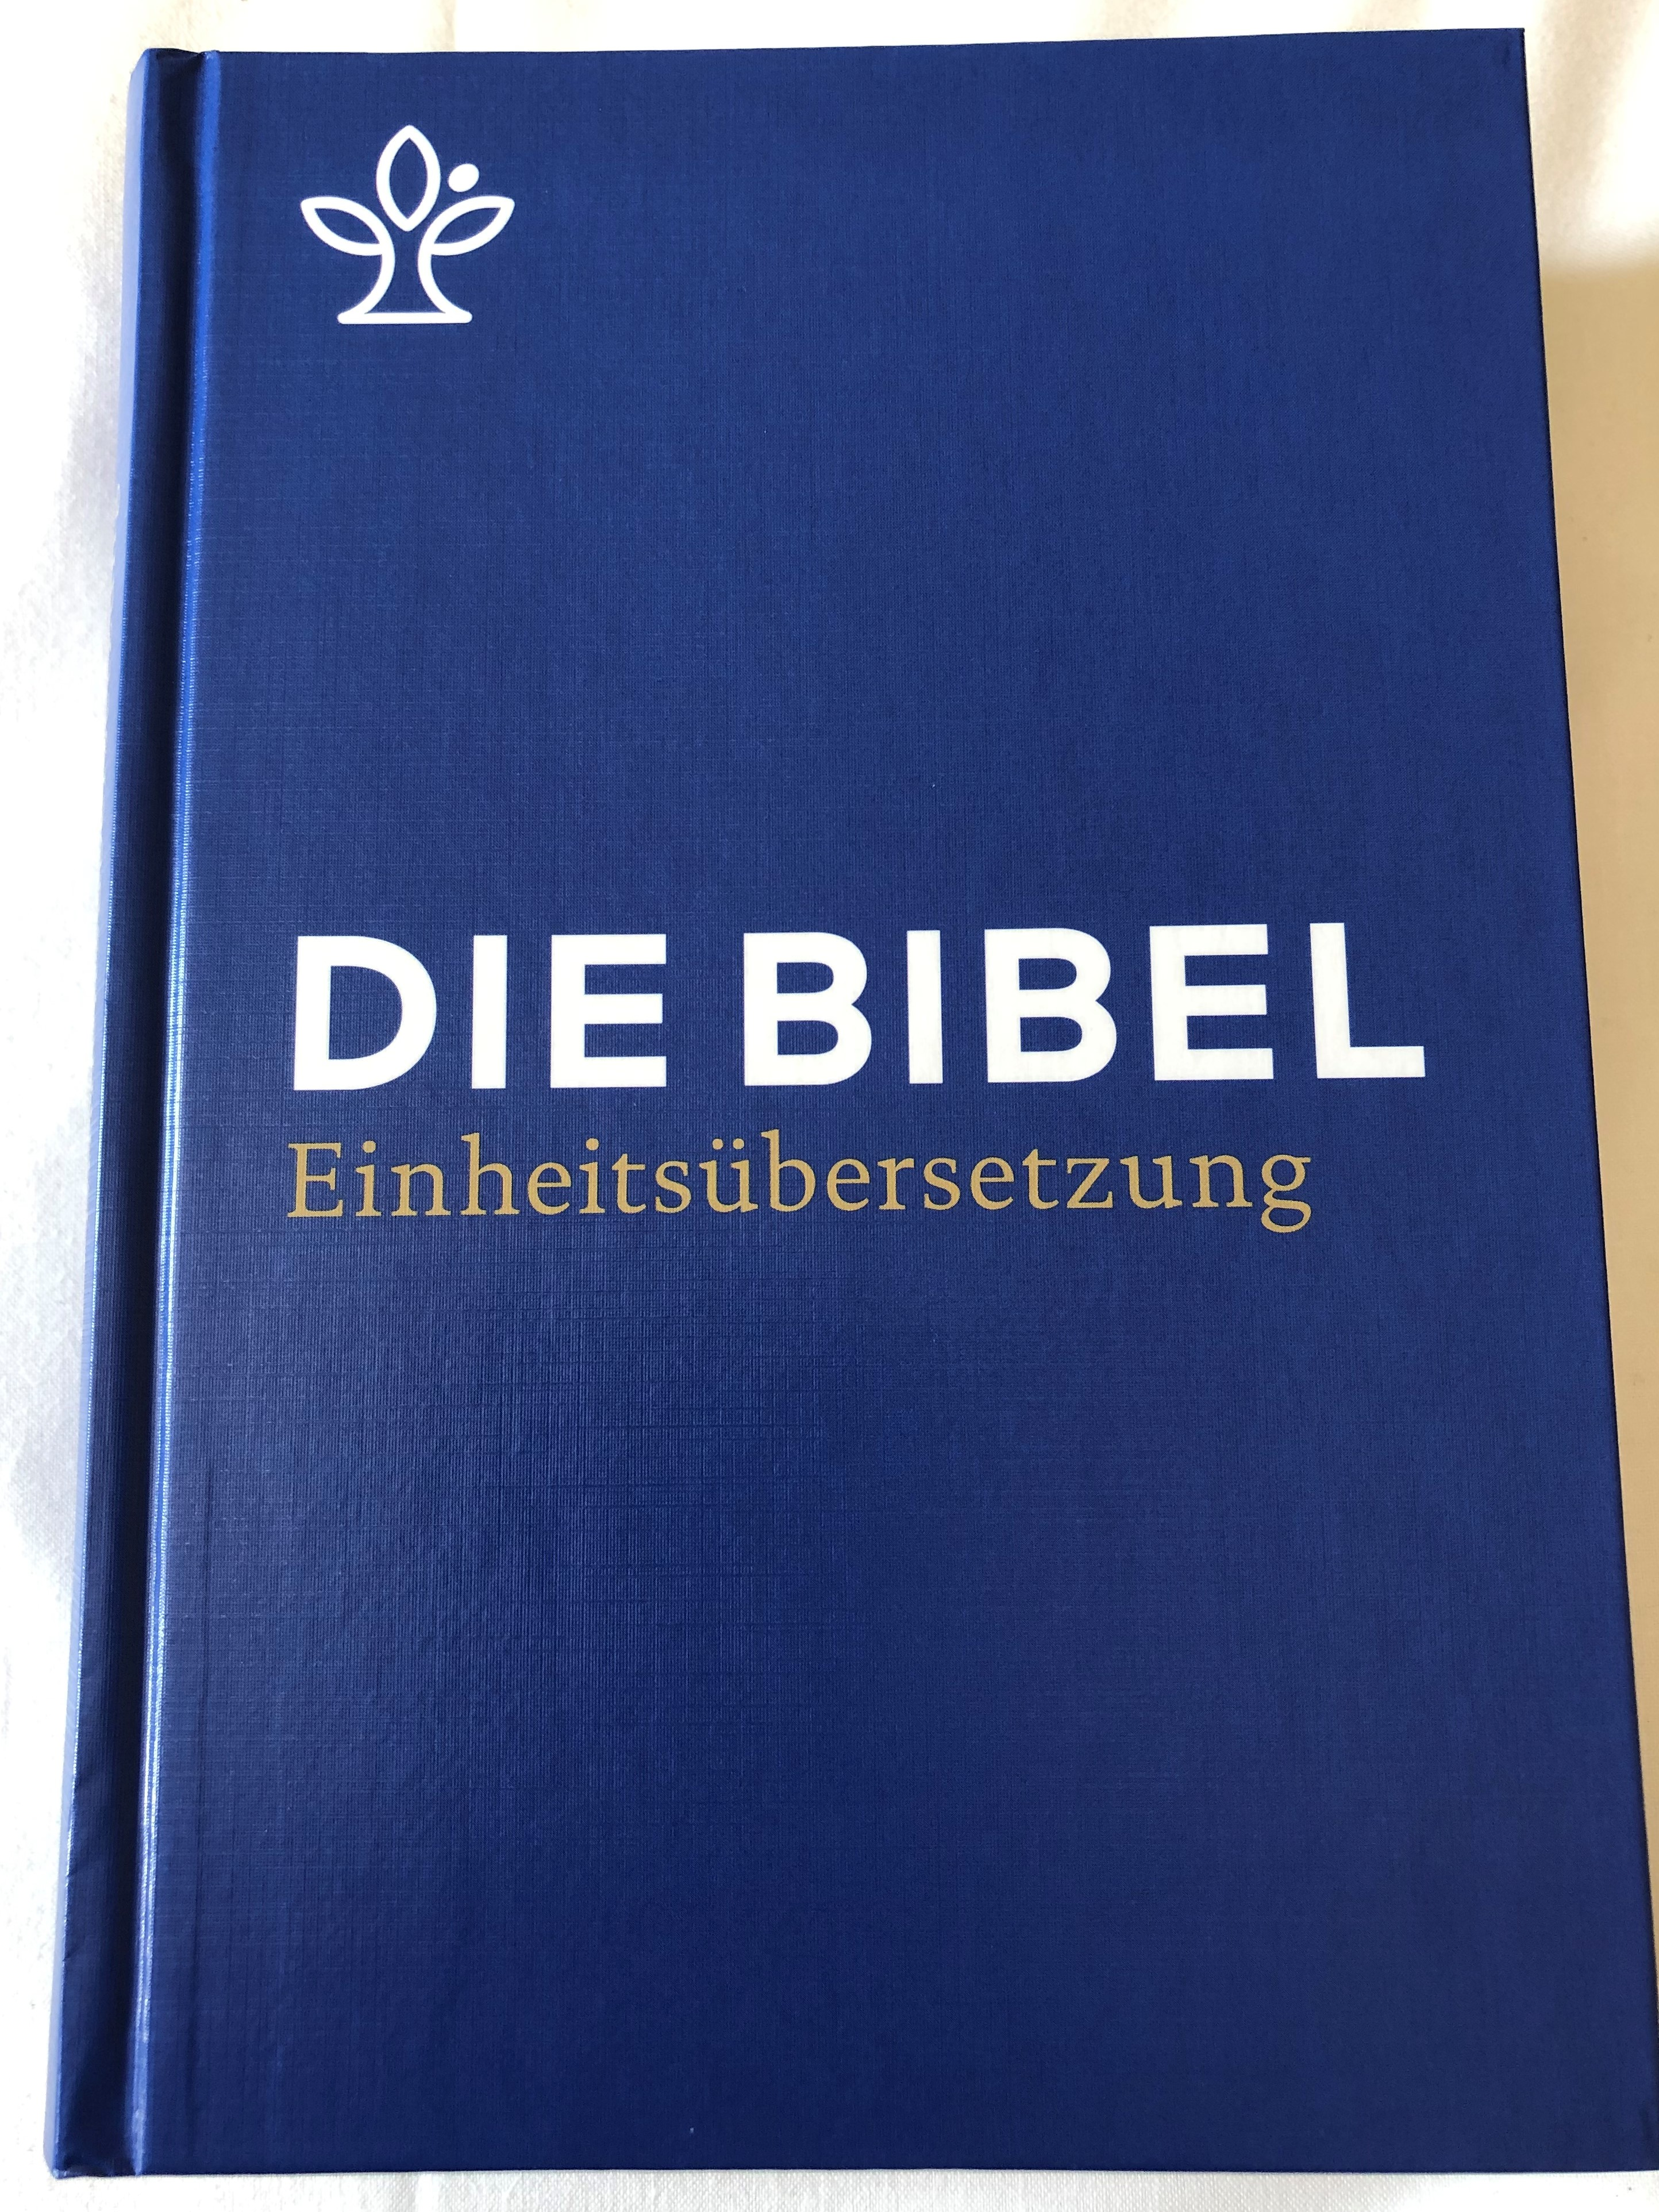 die-bibel-einheits-bersetzung-schulbibel-blau-german-language-holy-bible-unitary-translation-blue-contains-deuterocanonical-books-with-book-introductions-maps-notes-bible-history-timetable-hardcover-2017-katoli-1-.jpg